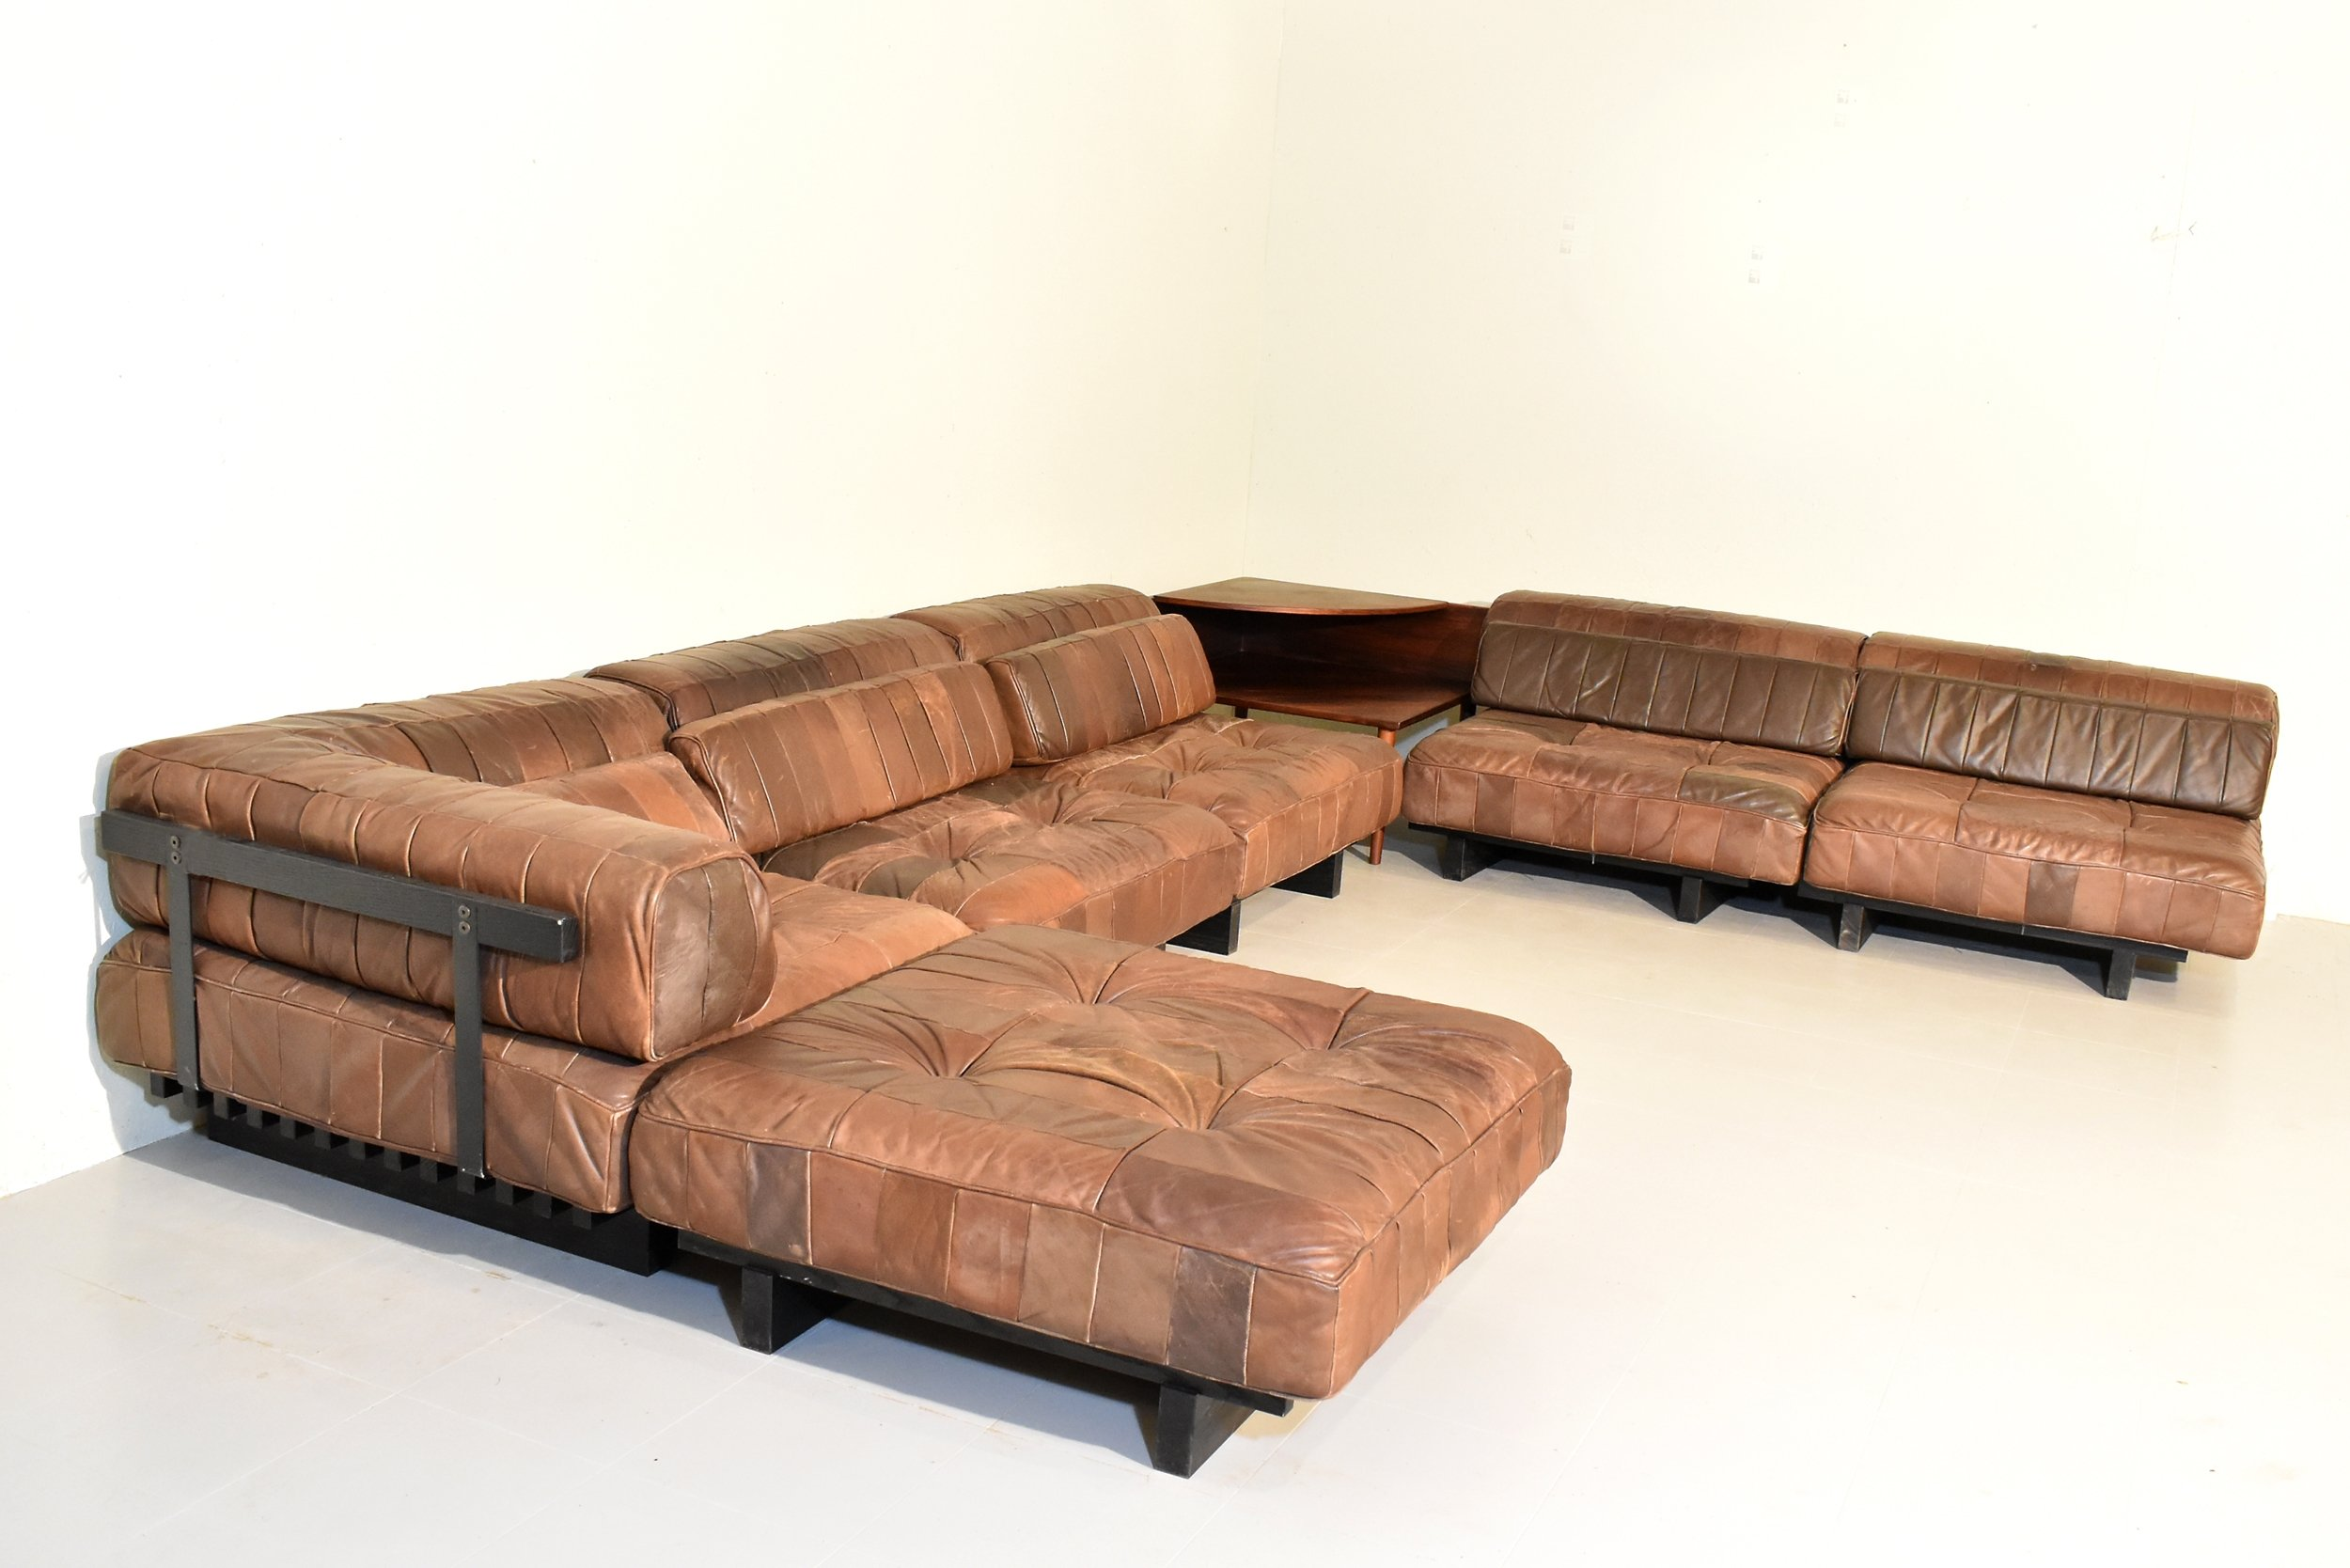 ds80 sofa by de sede 1980s 76074. Black Bedroom Furniture Sets. Home Design Ideas